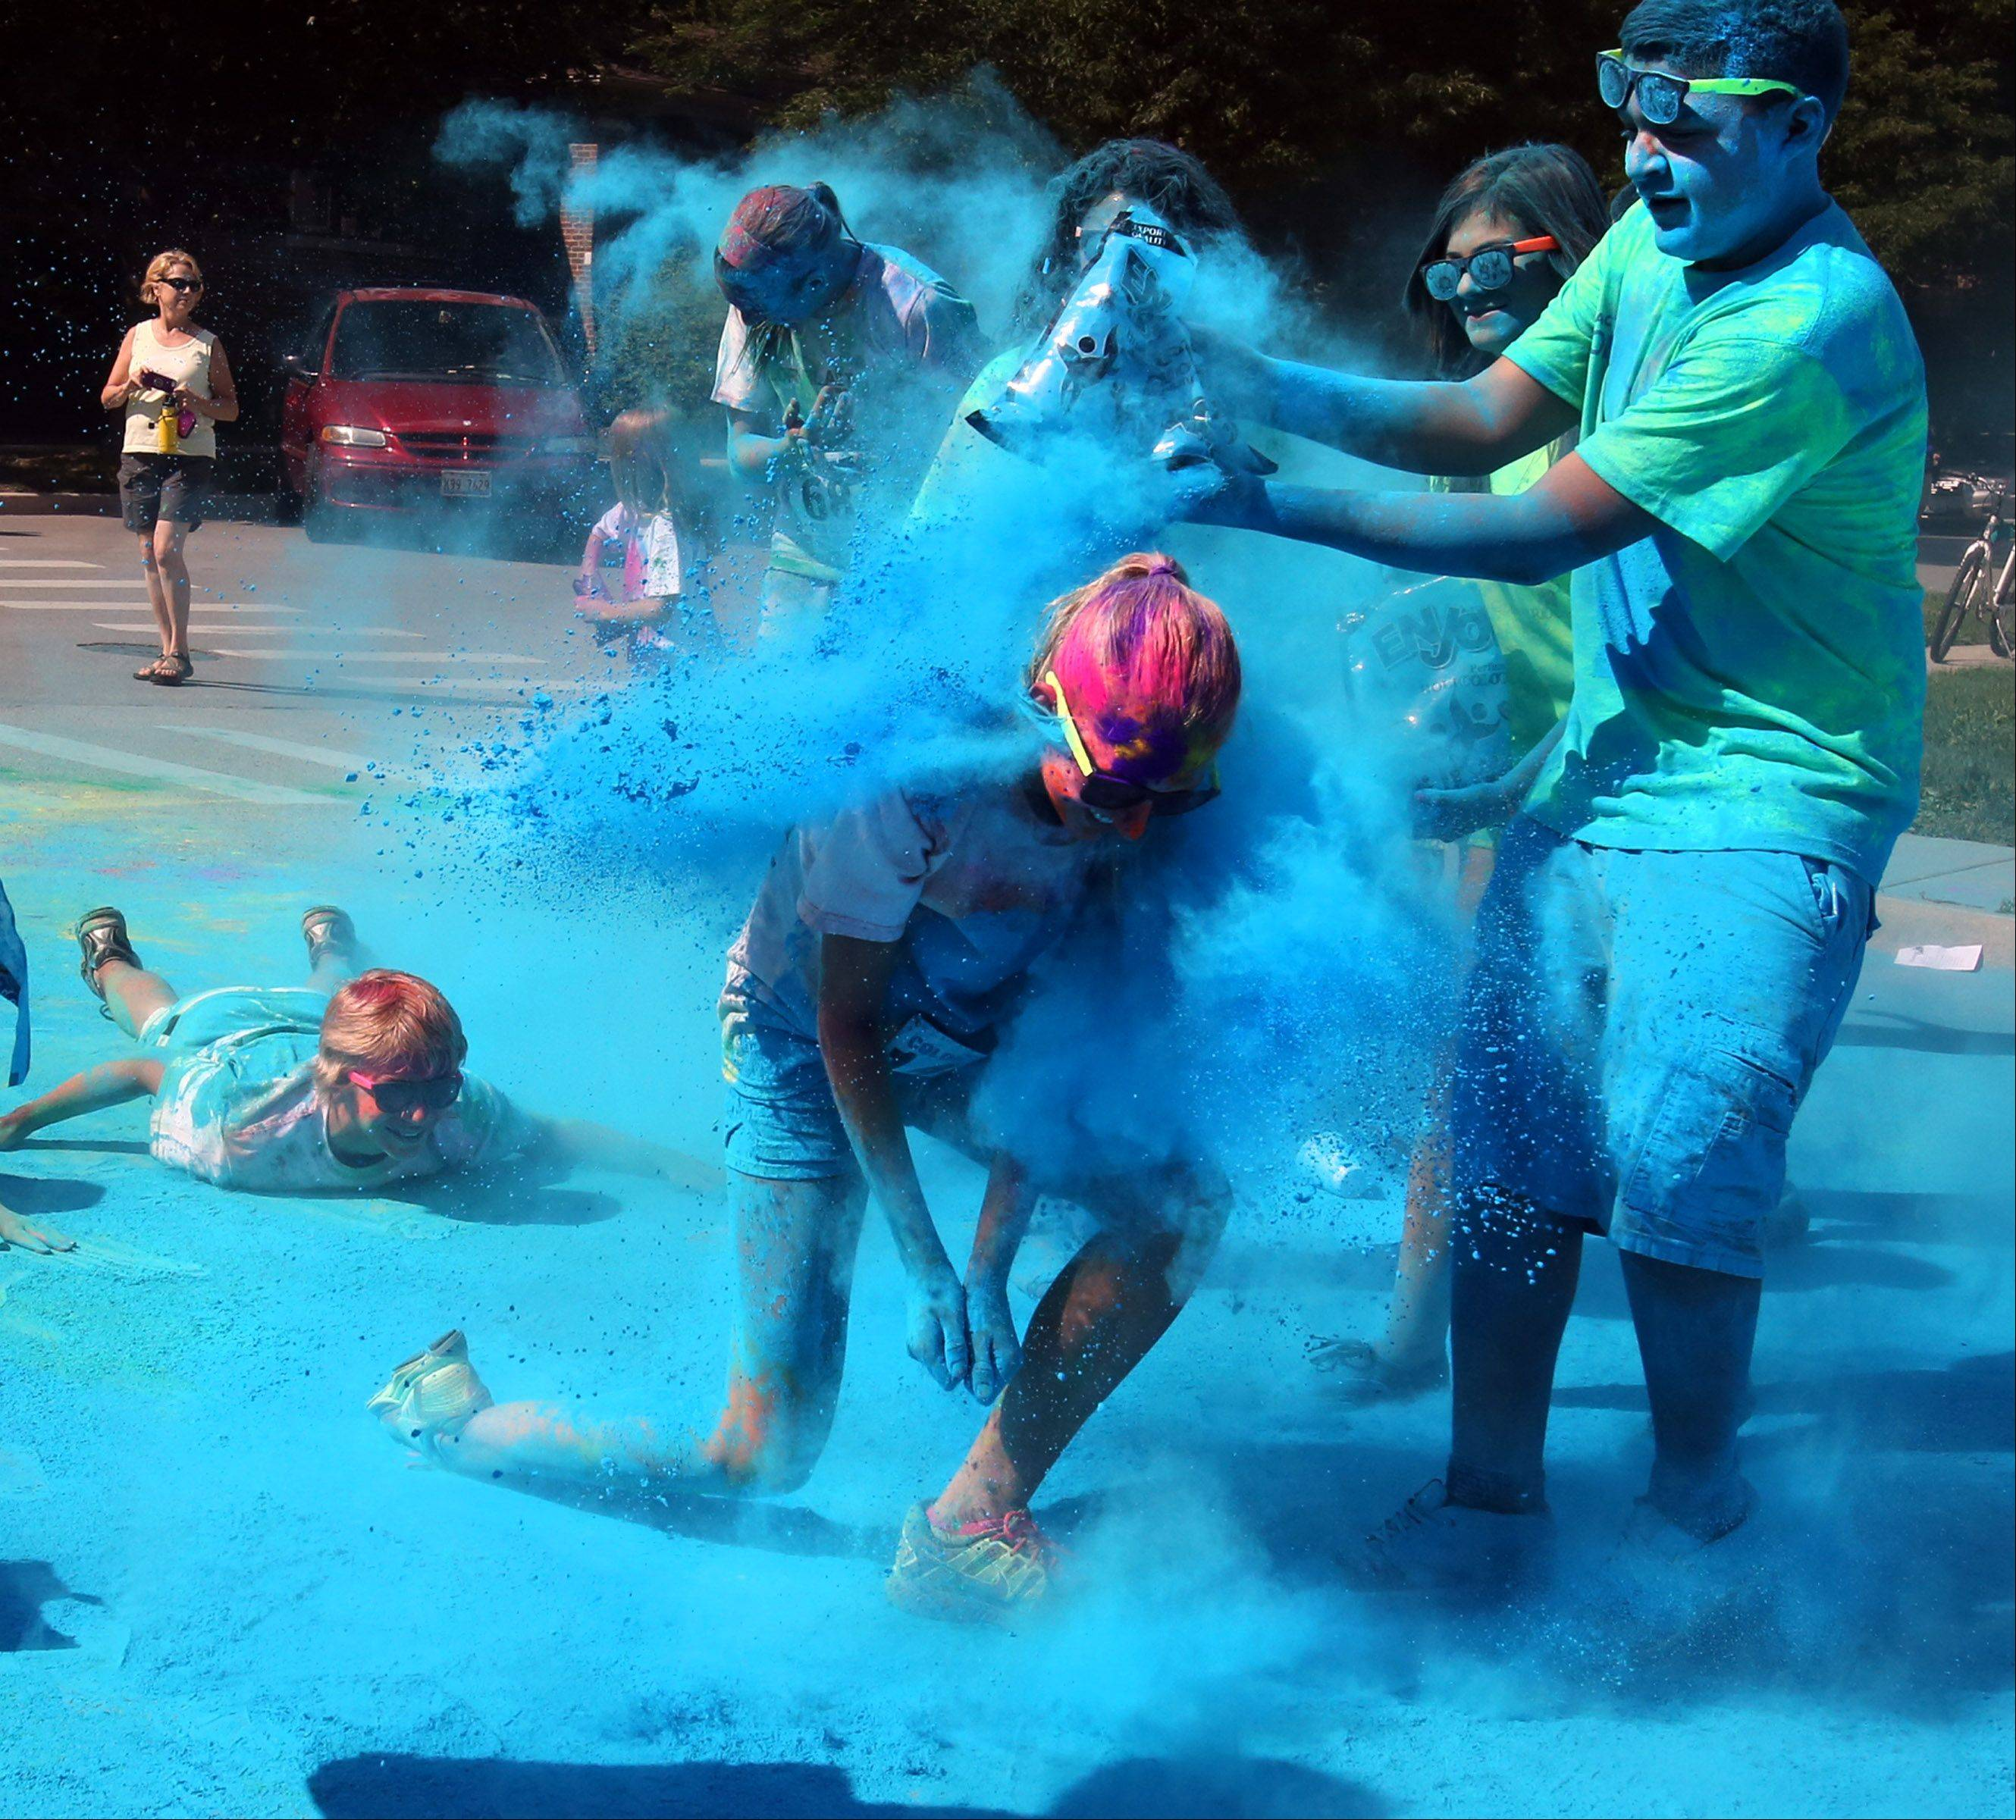 Allie Renner, 13, of Cary, is doused with blue powder by volunteers near the finish of the first Active Care Color Blast 5k run Saturday in Arlington Heights. All proceeds go to Clearbrook.